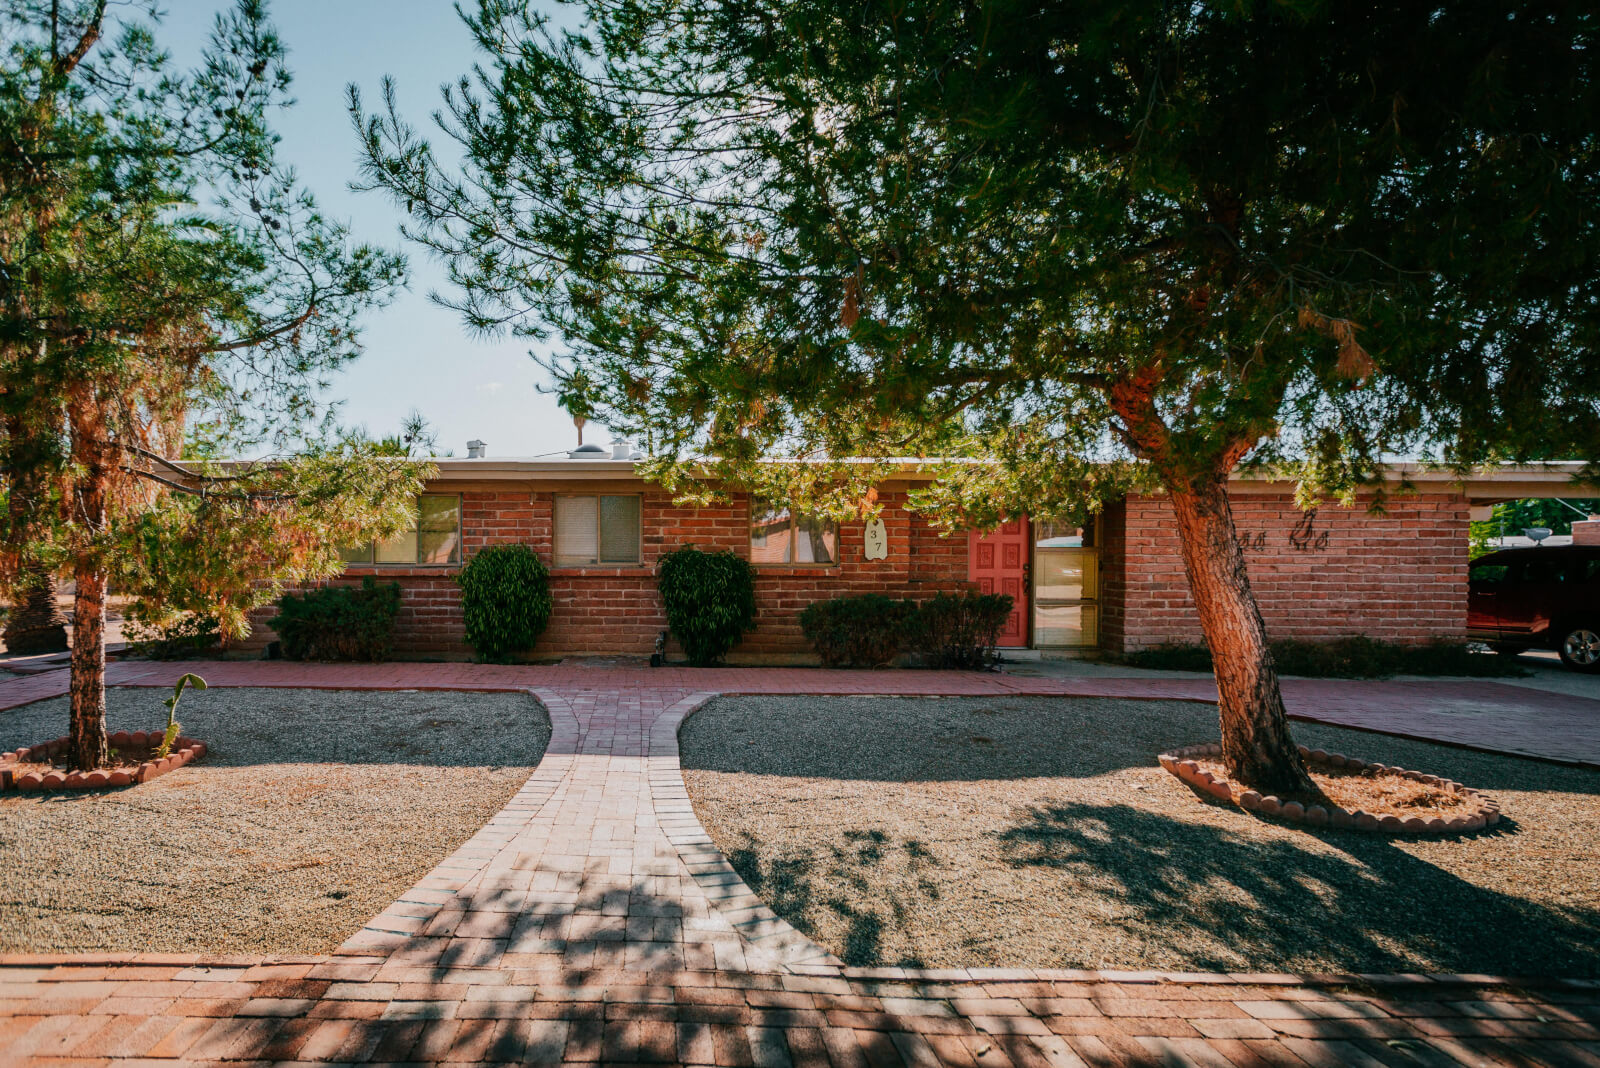 A flat-roof, brick home in the San Rafael Estates neighborhood of Tucson, Arizona